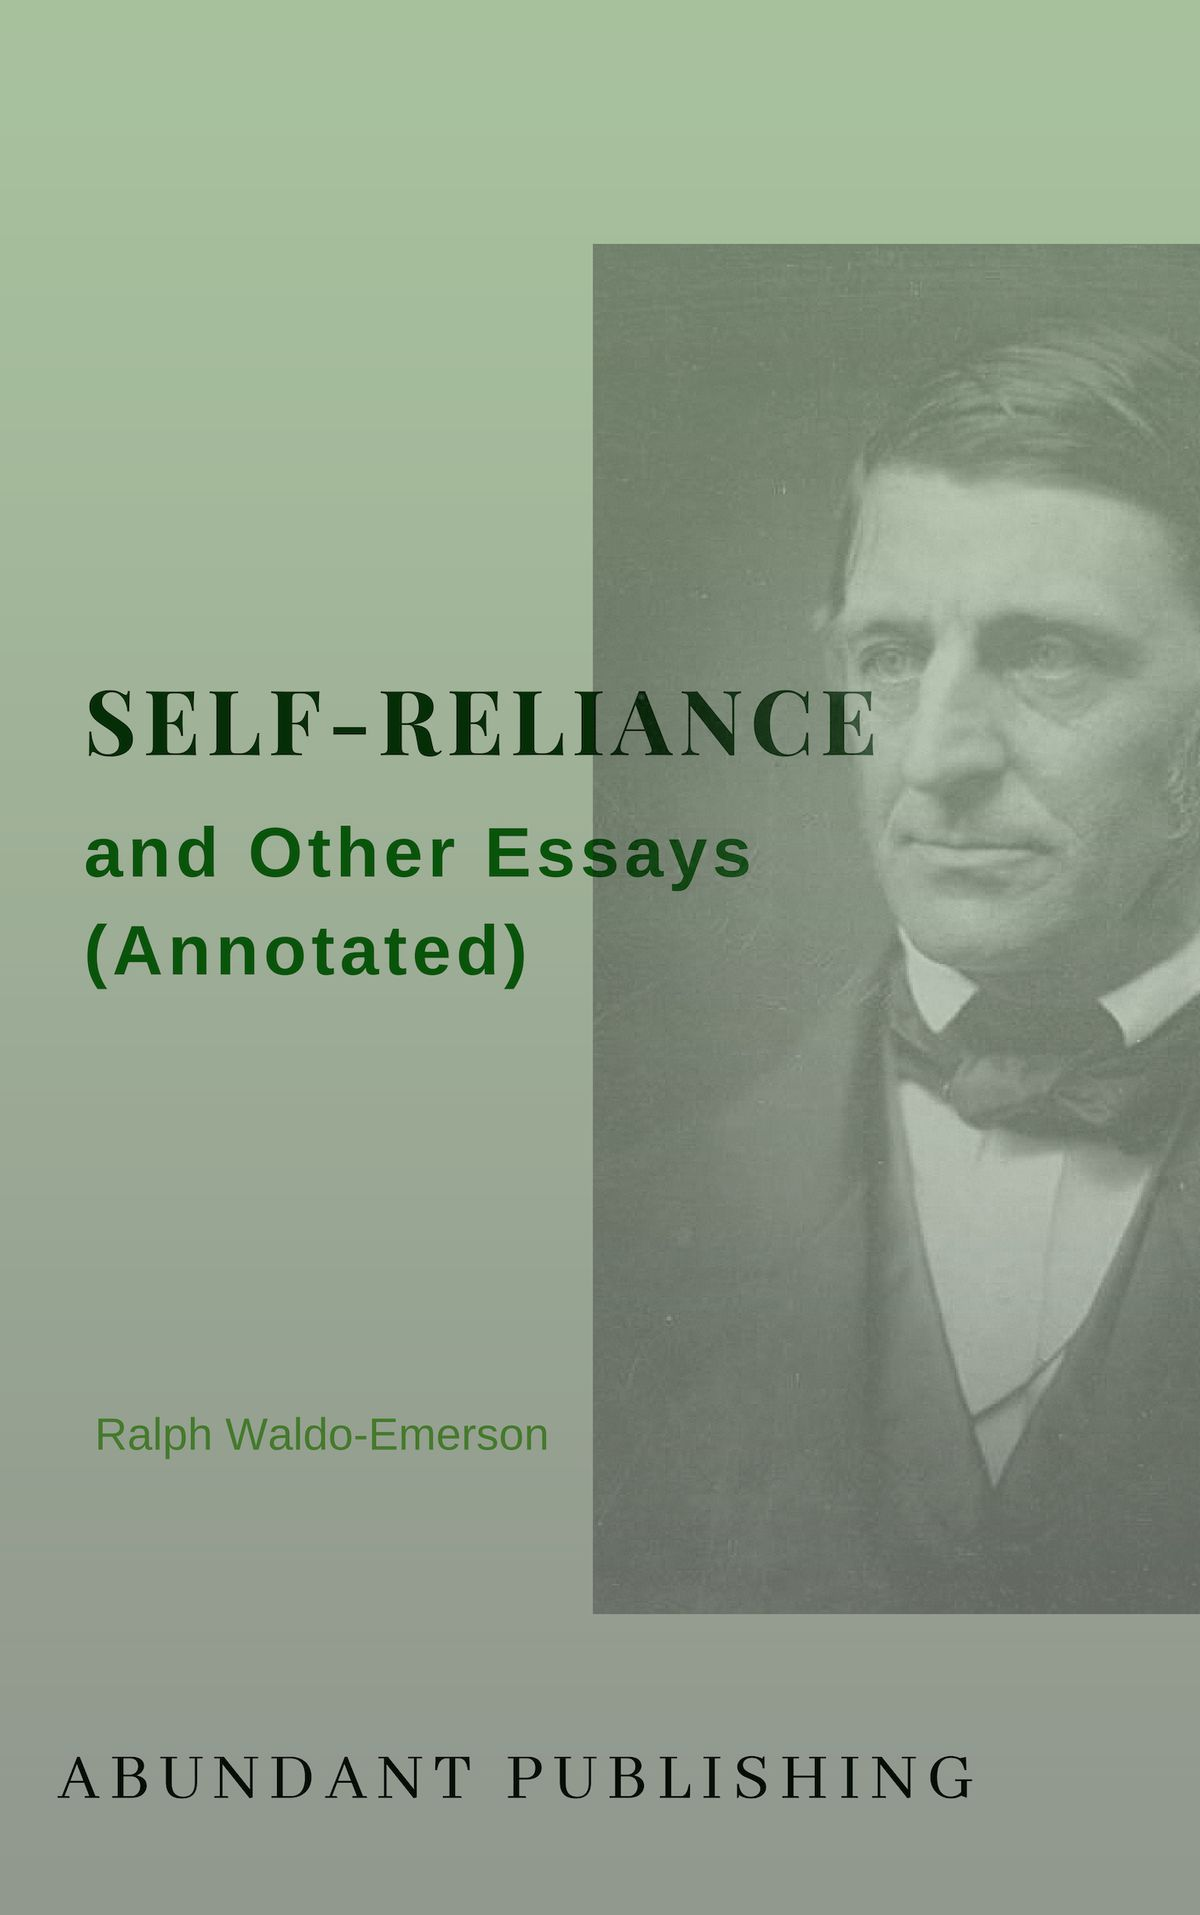 005 Self Reliance And Other Essays Annotated Essay Formidable Ralph Waldo Emerson Pdf Ekşi Full